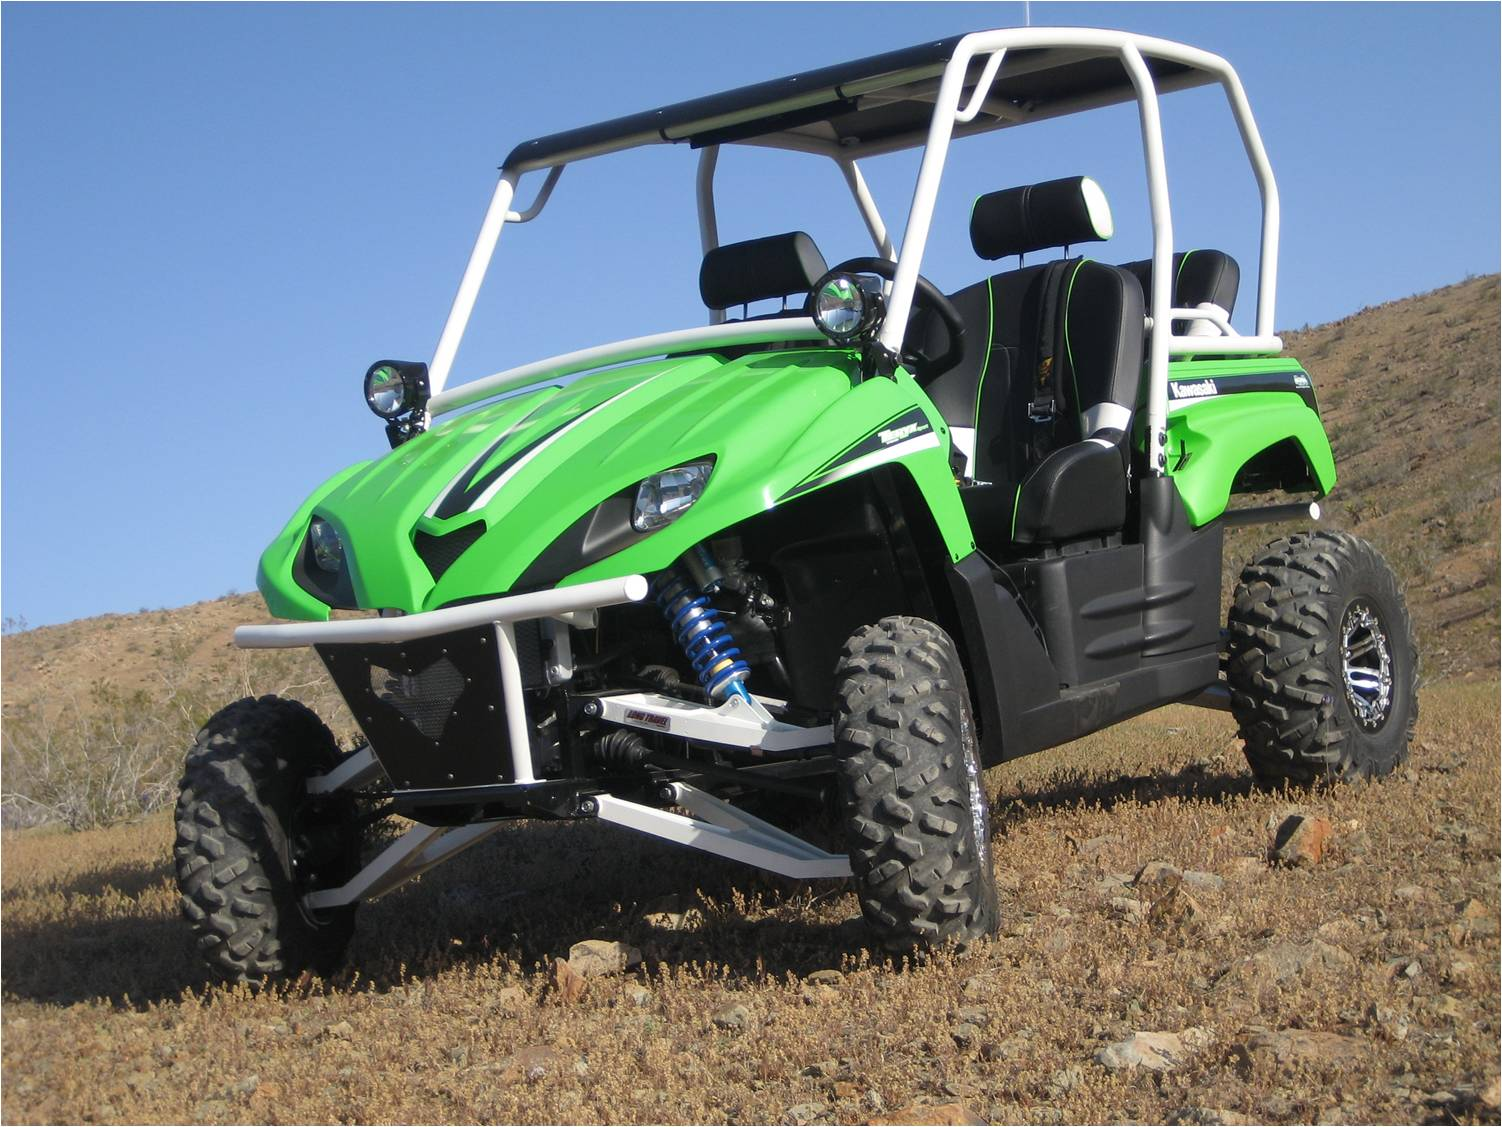 Best Roll Cage, 4 Seater package-teryx-green-lti-4-seater.jpg